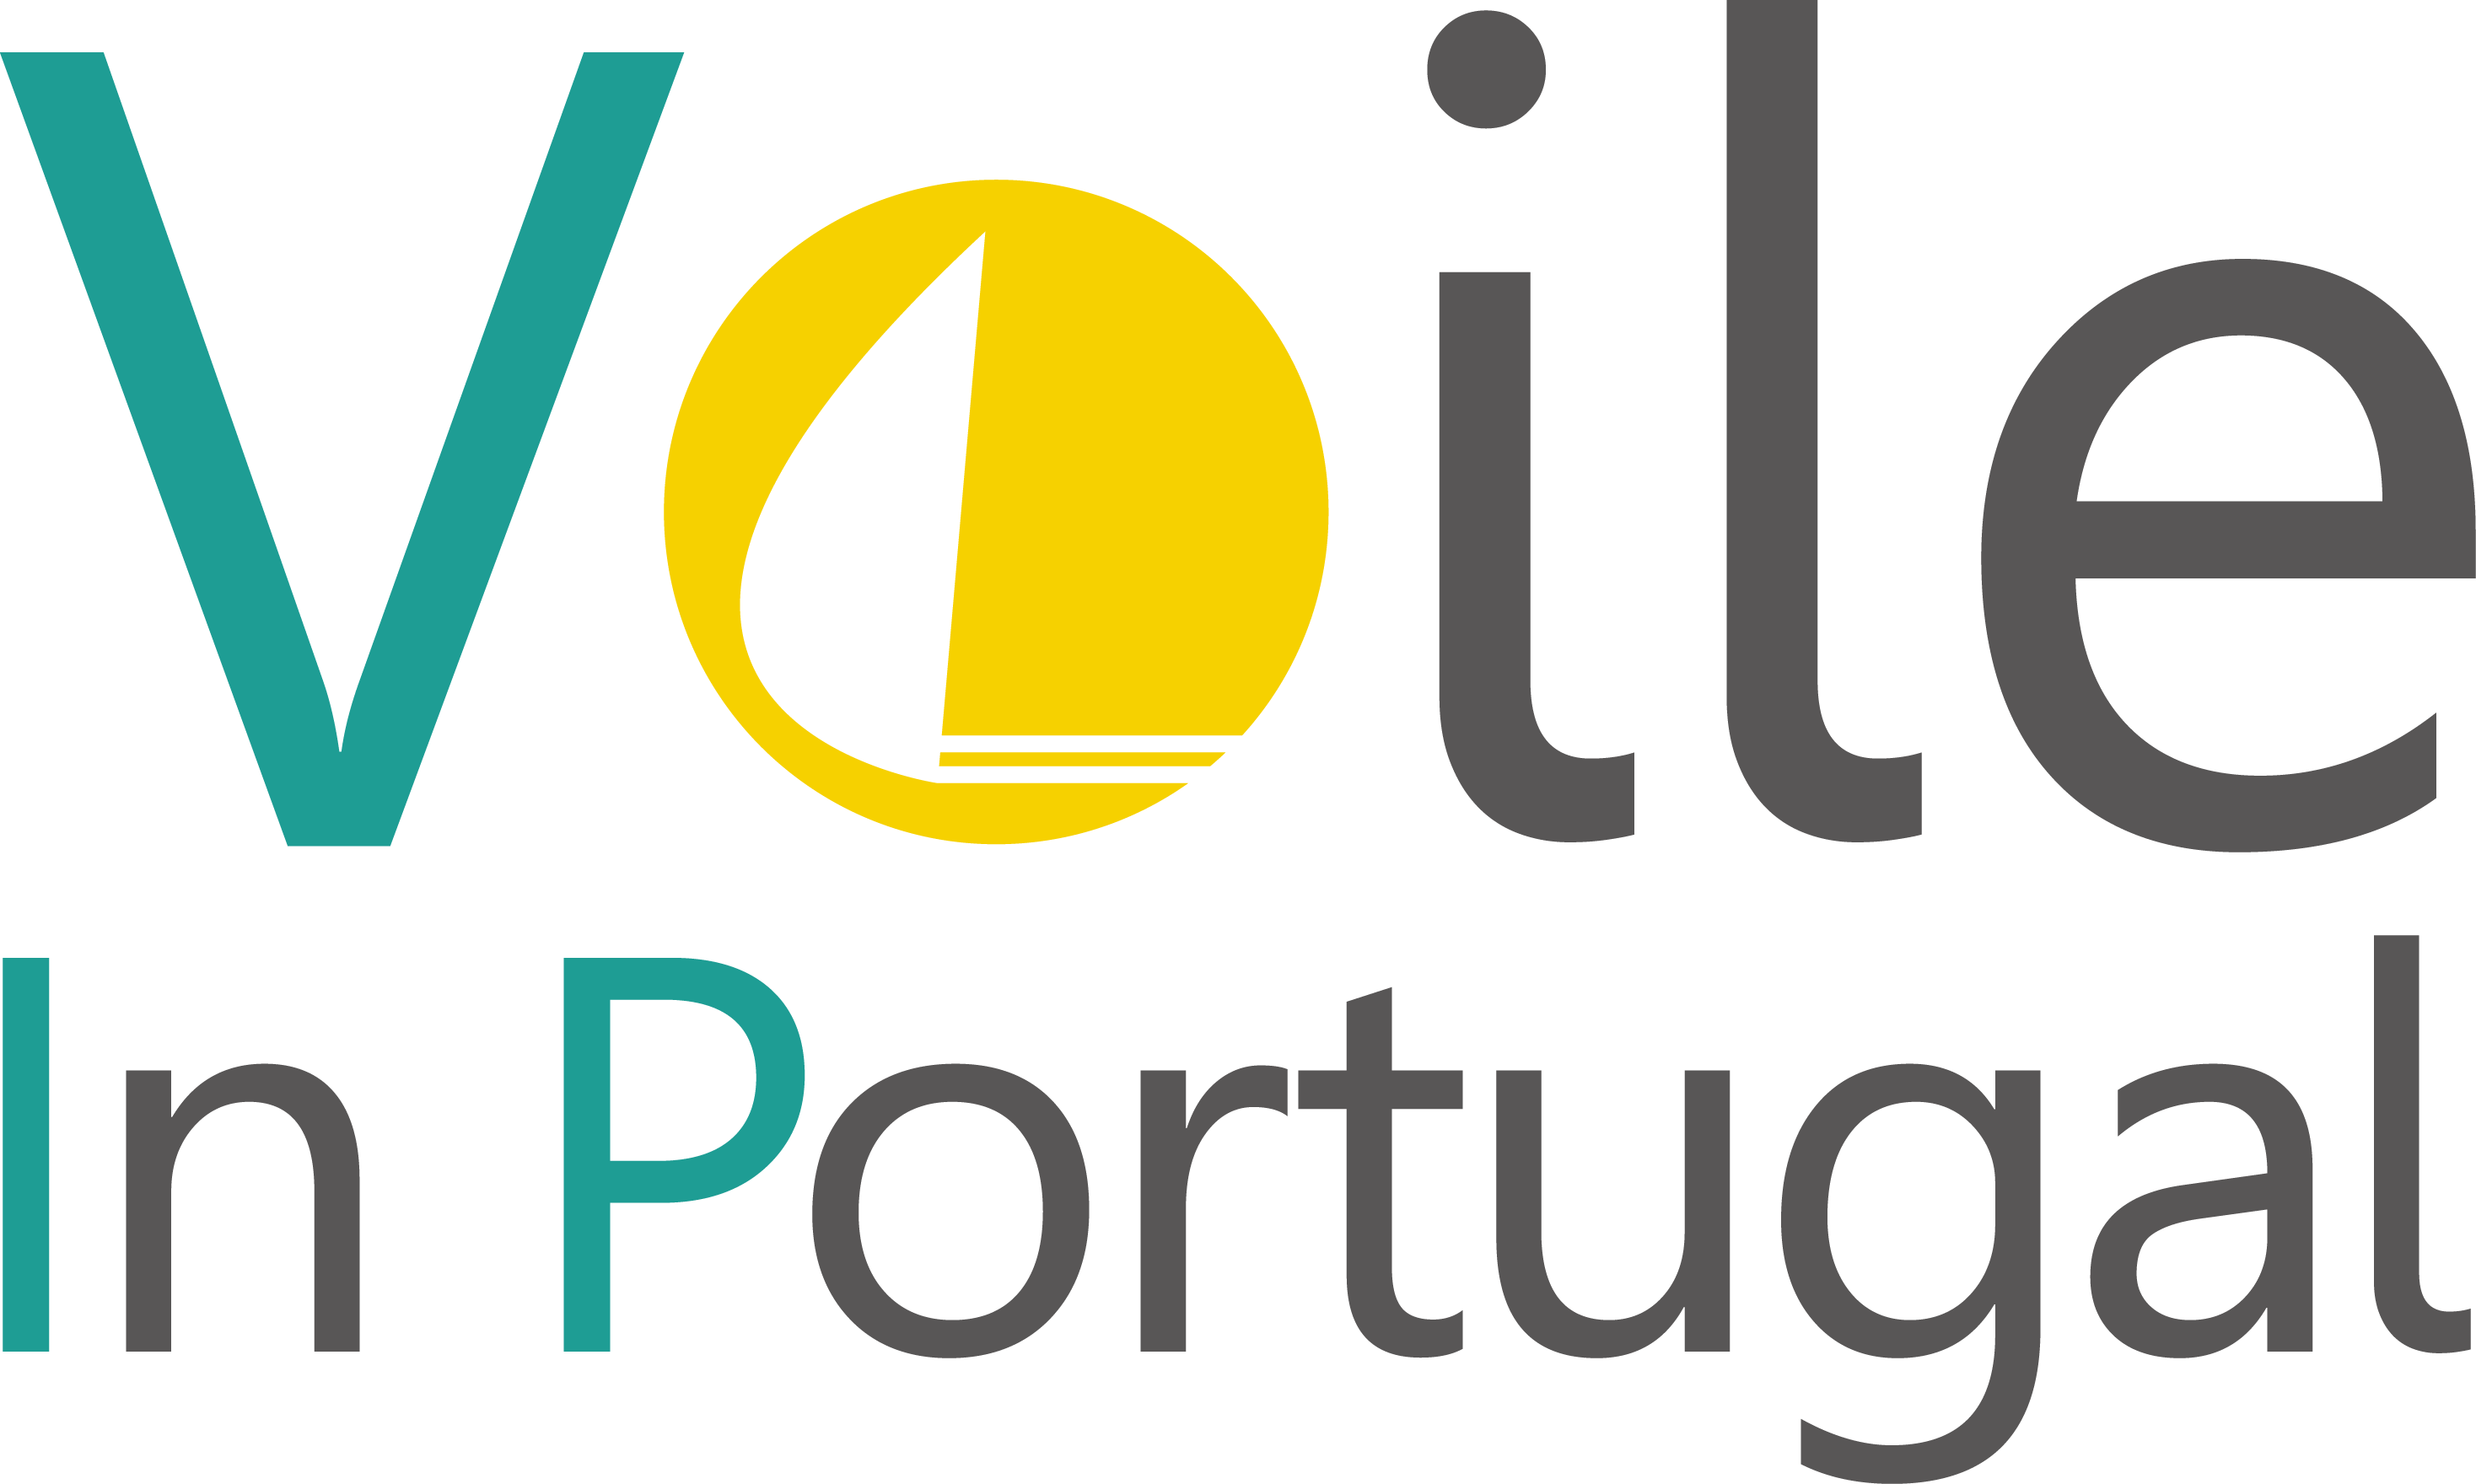 Voile In Portugal